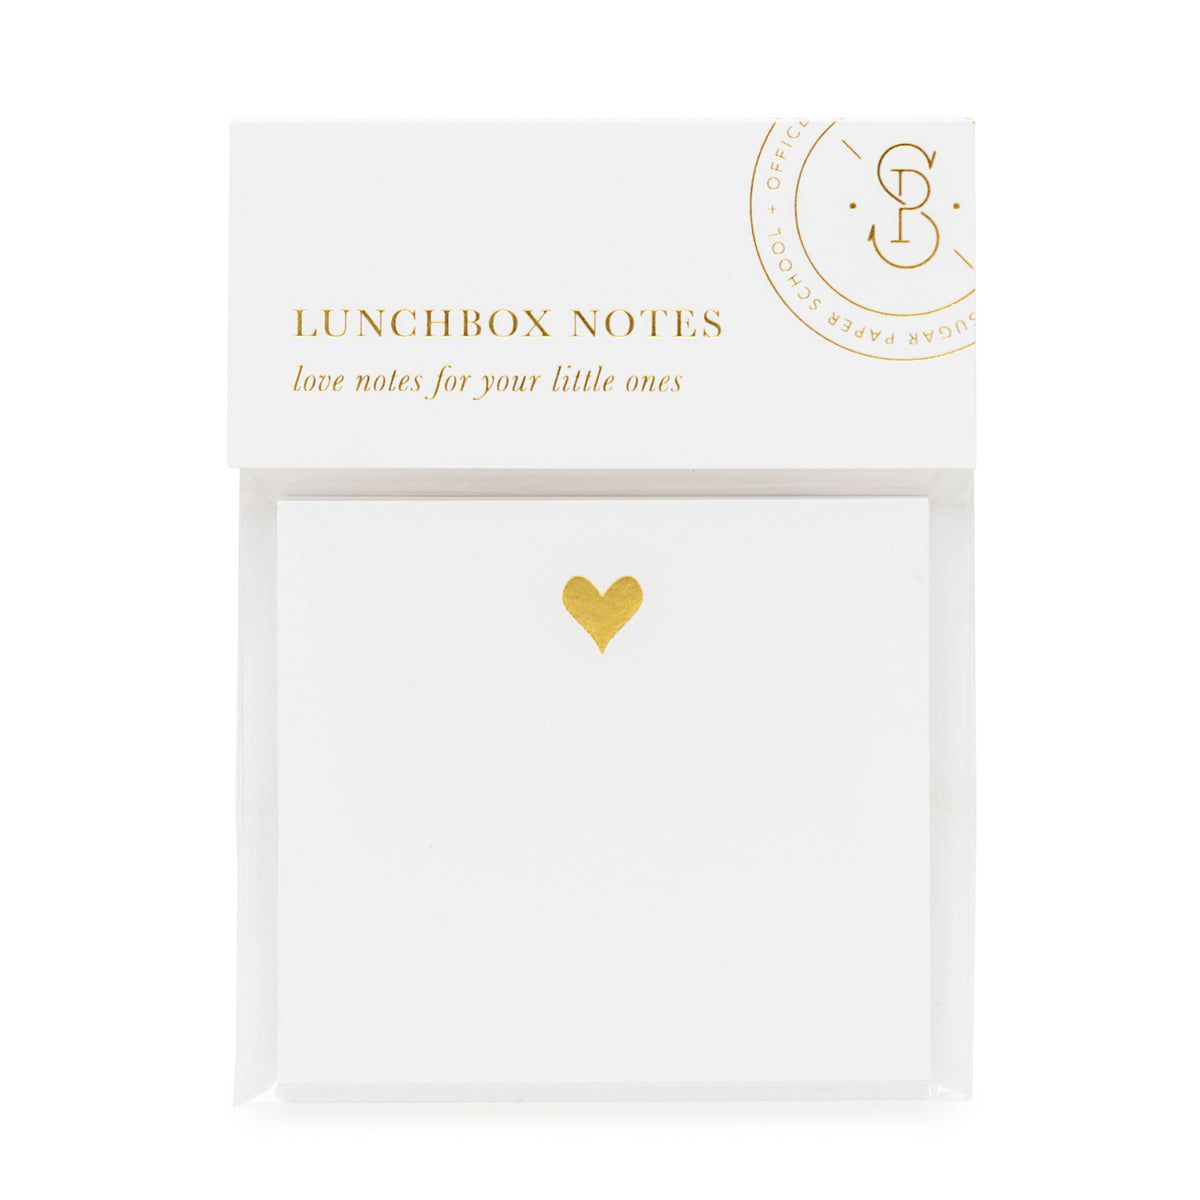 Packaged lunch box notes with gold heart - Love notes for your little ones.